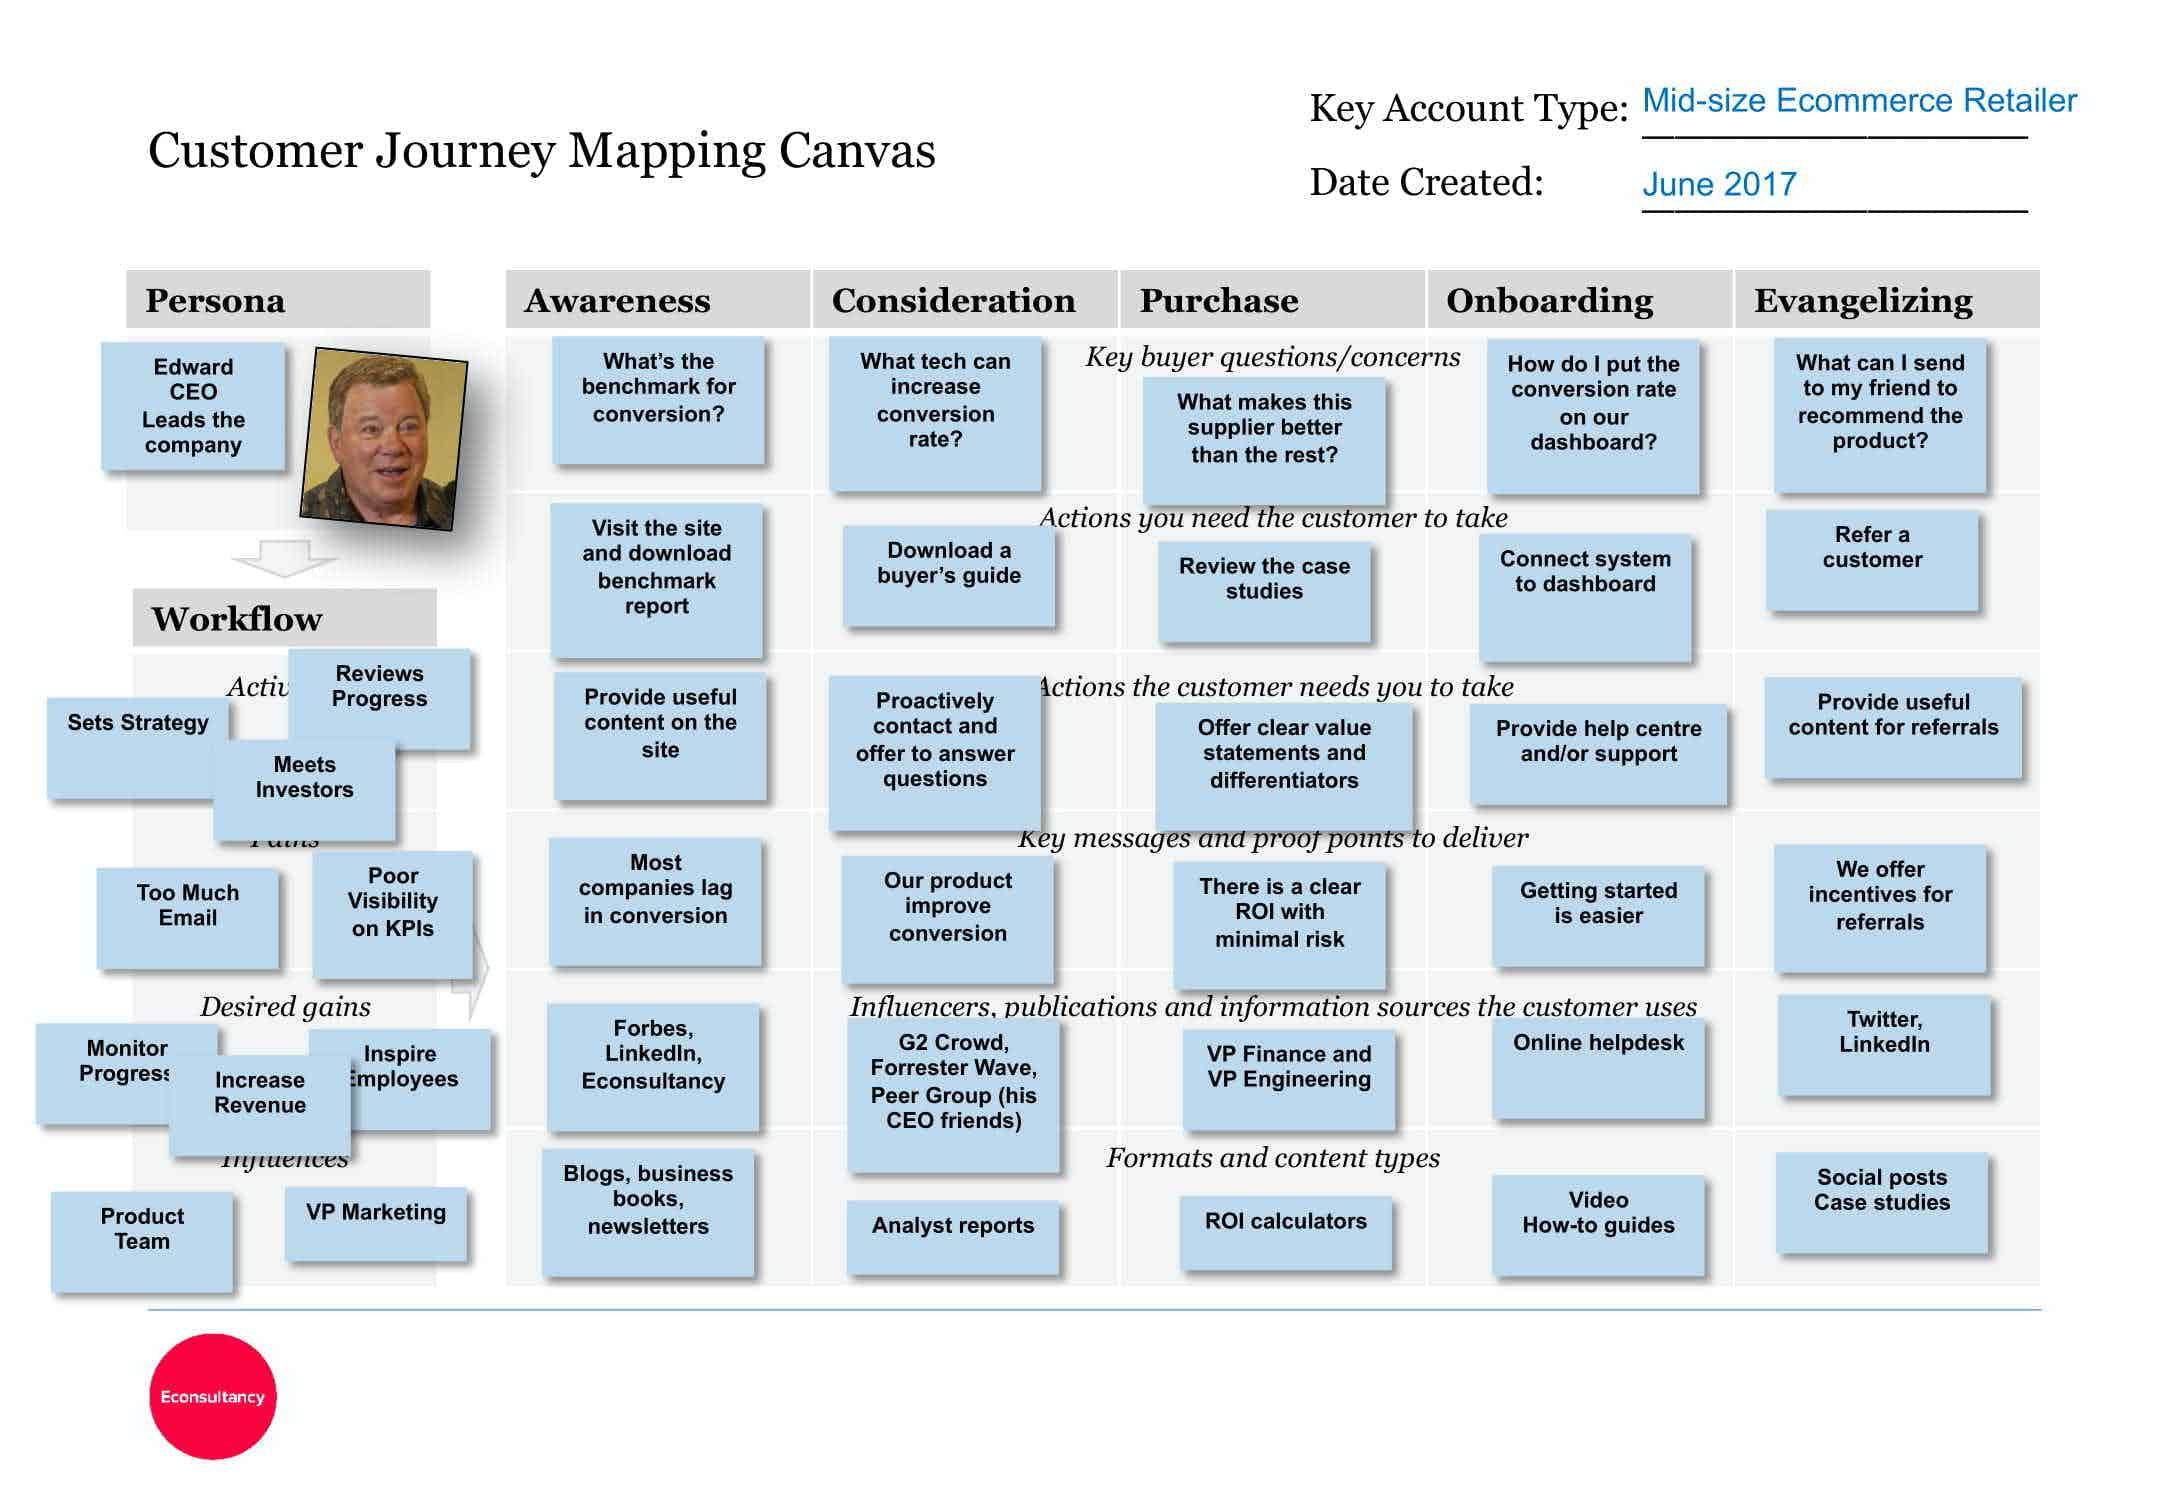 customer journey mapping canvas completed